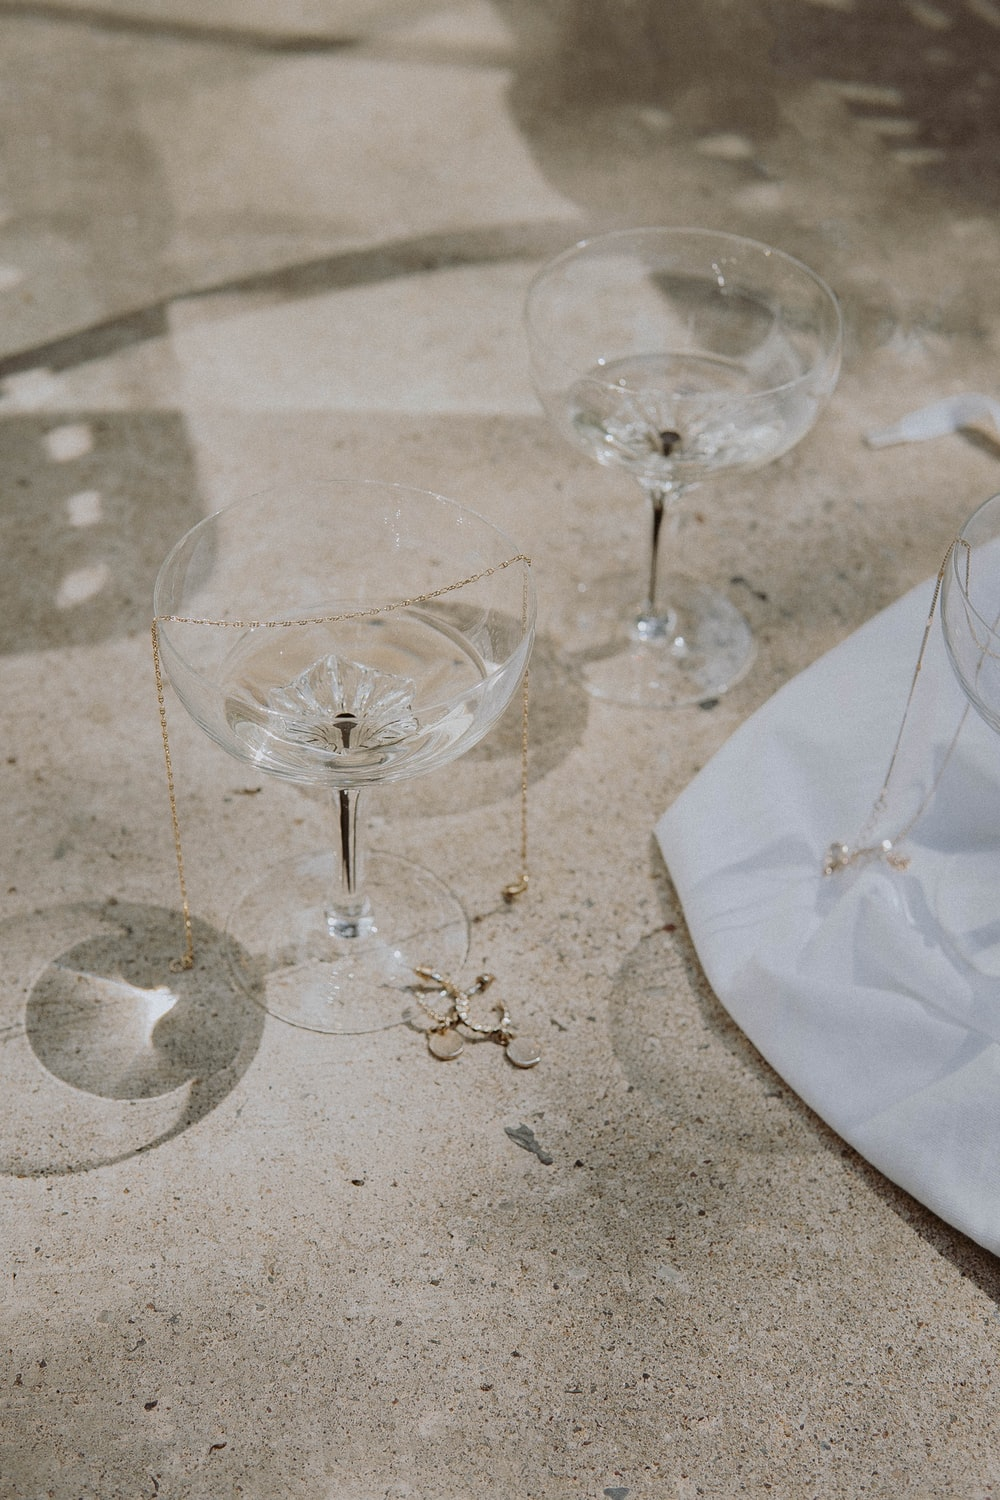 clear wine glass on white table cloth